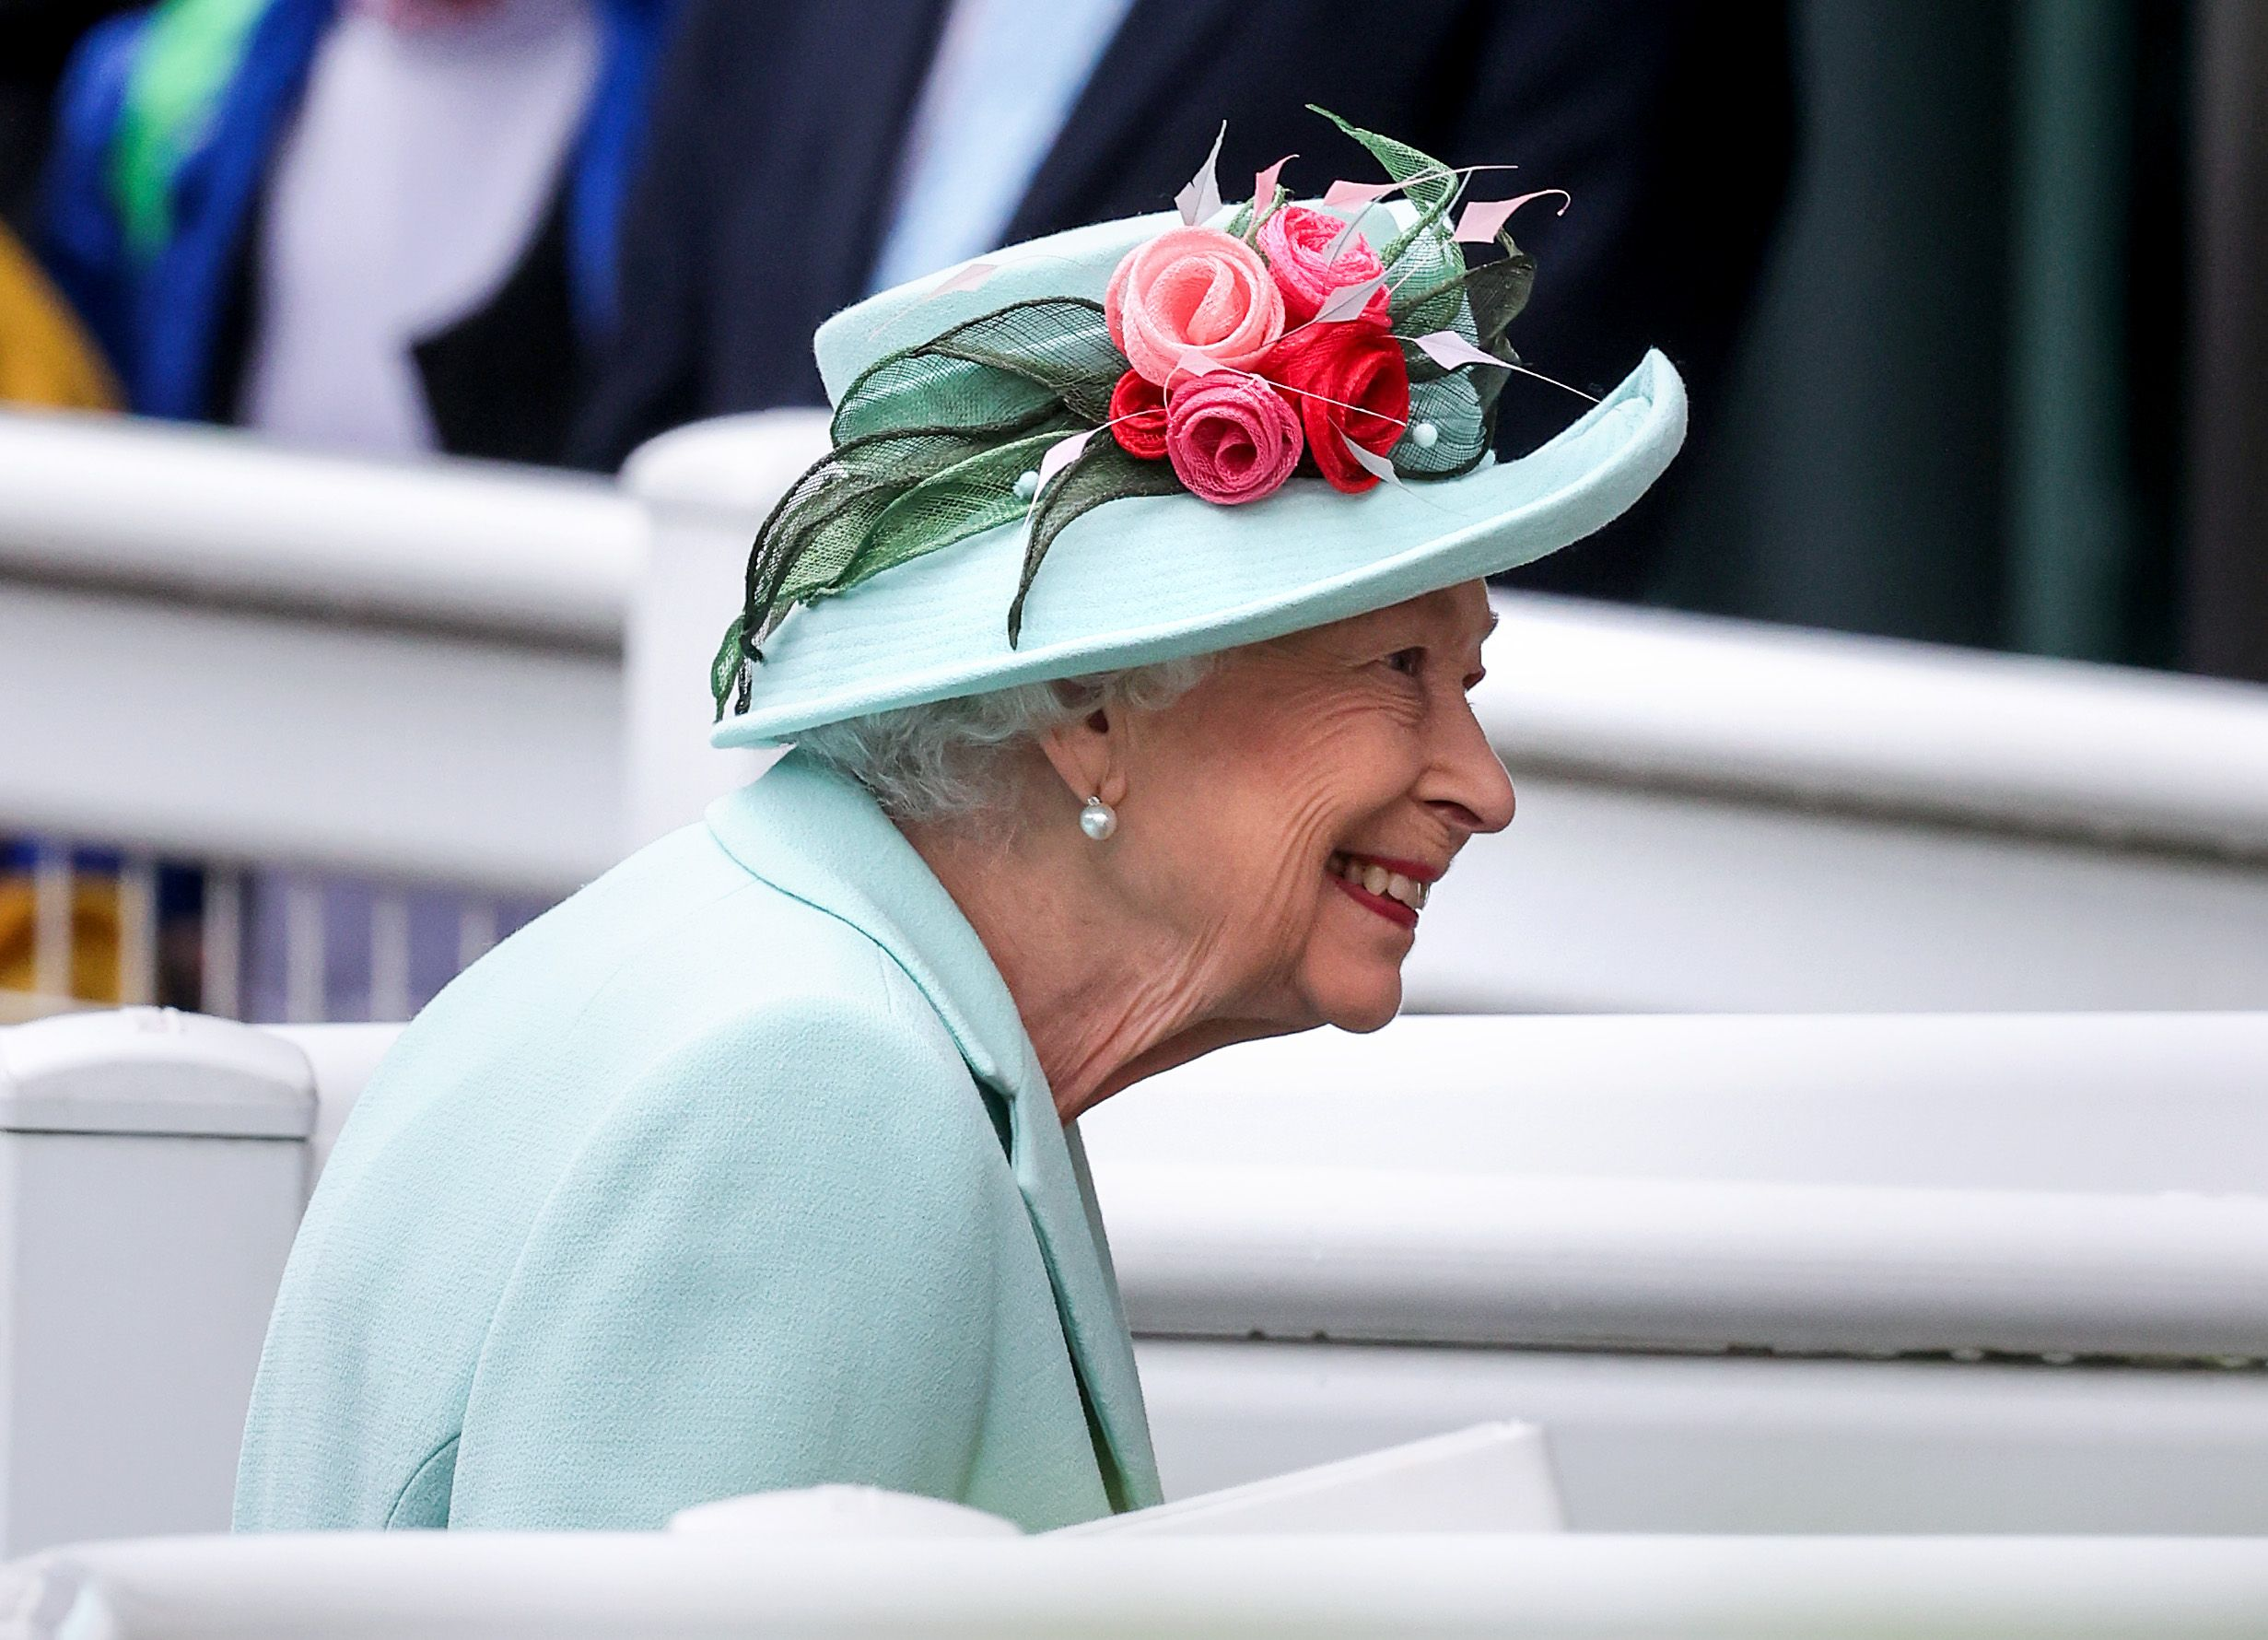 All of the photos of the Queen at Royal Ascot